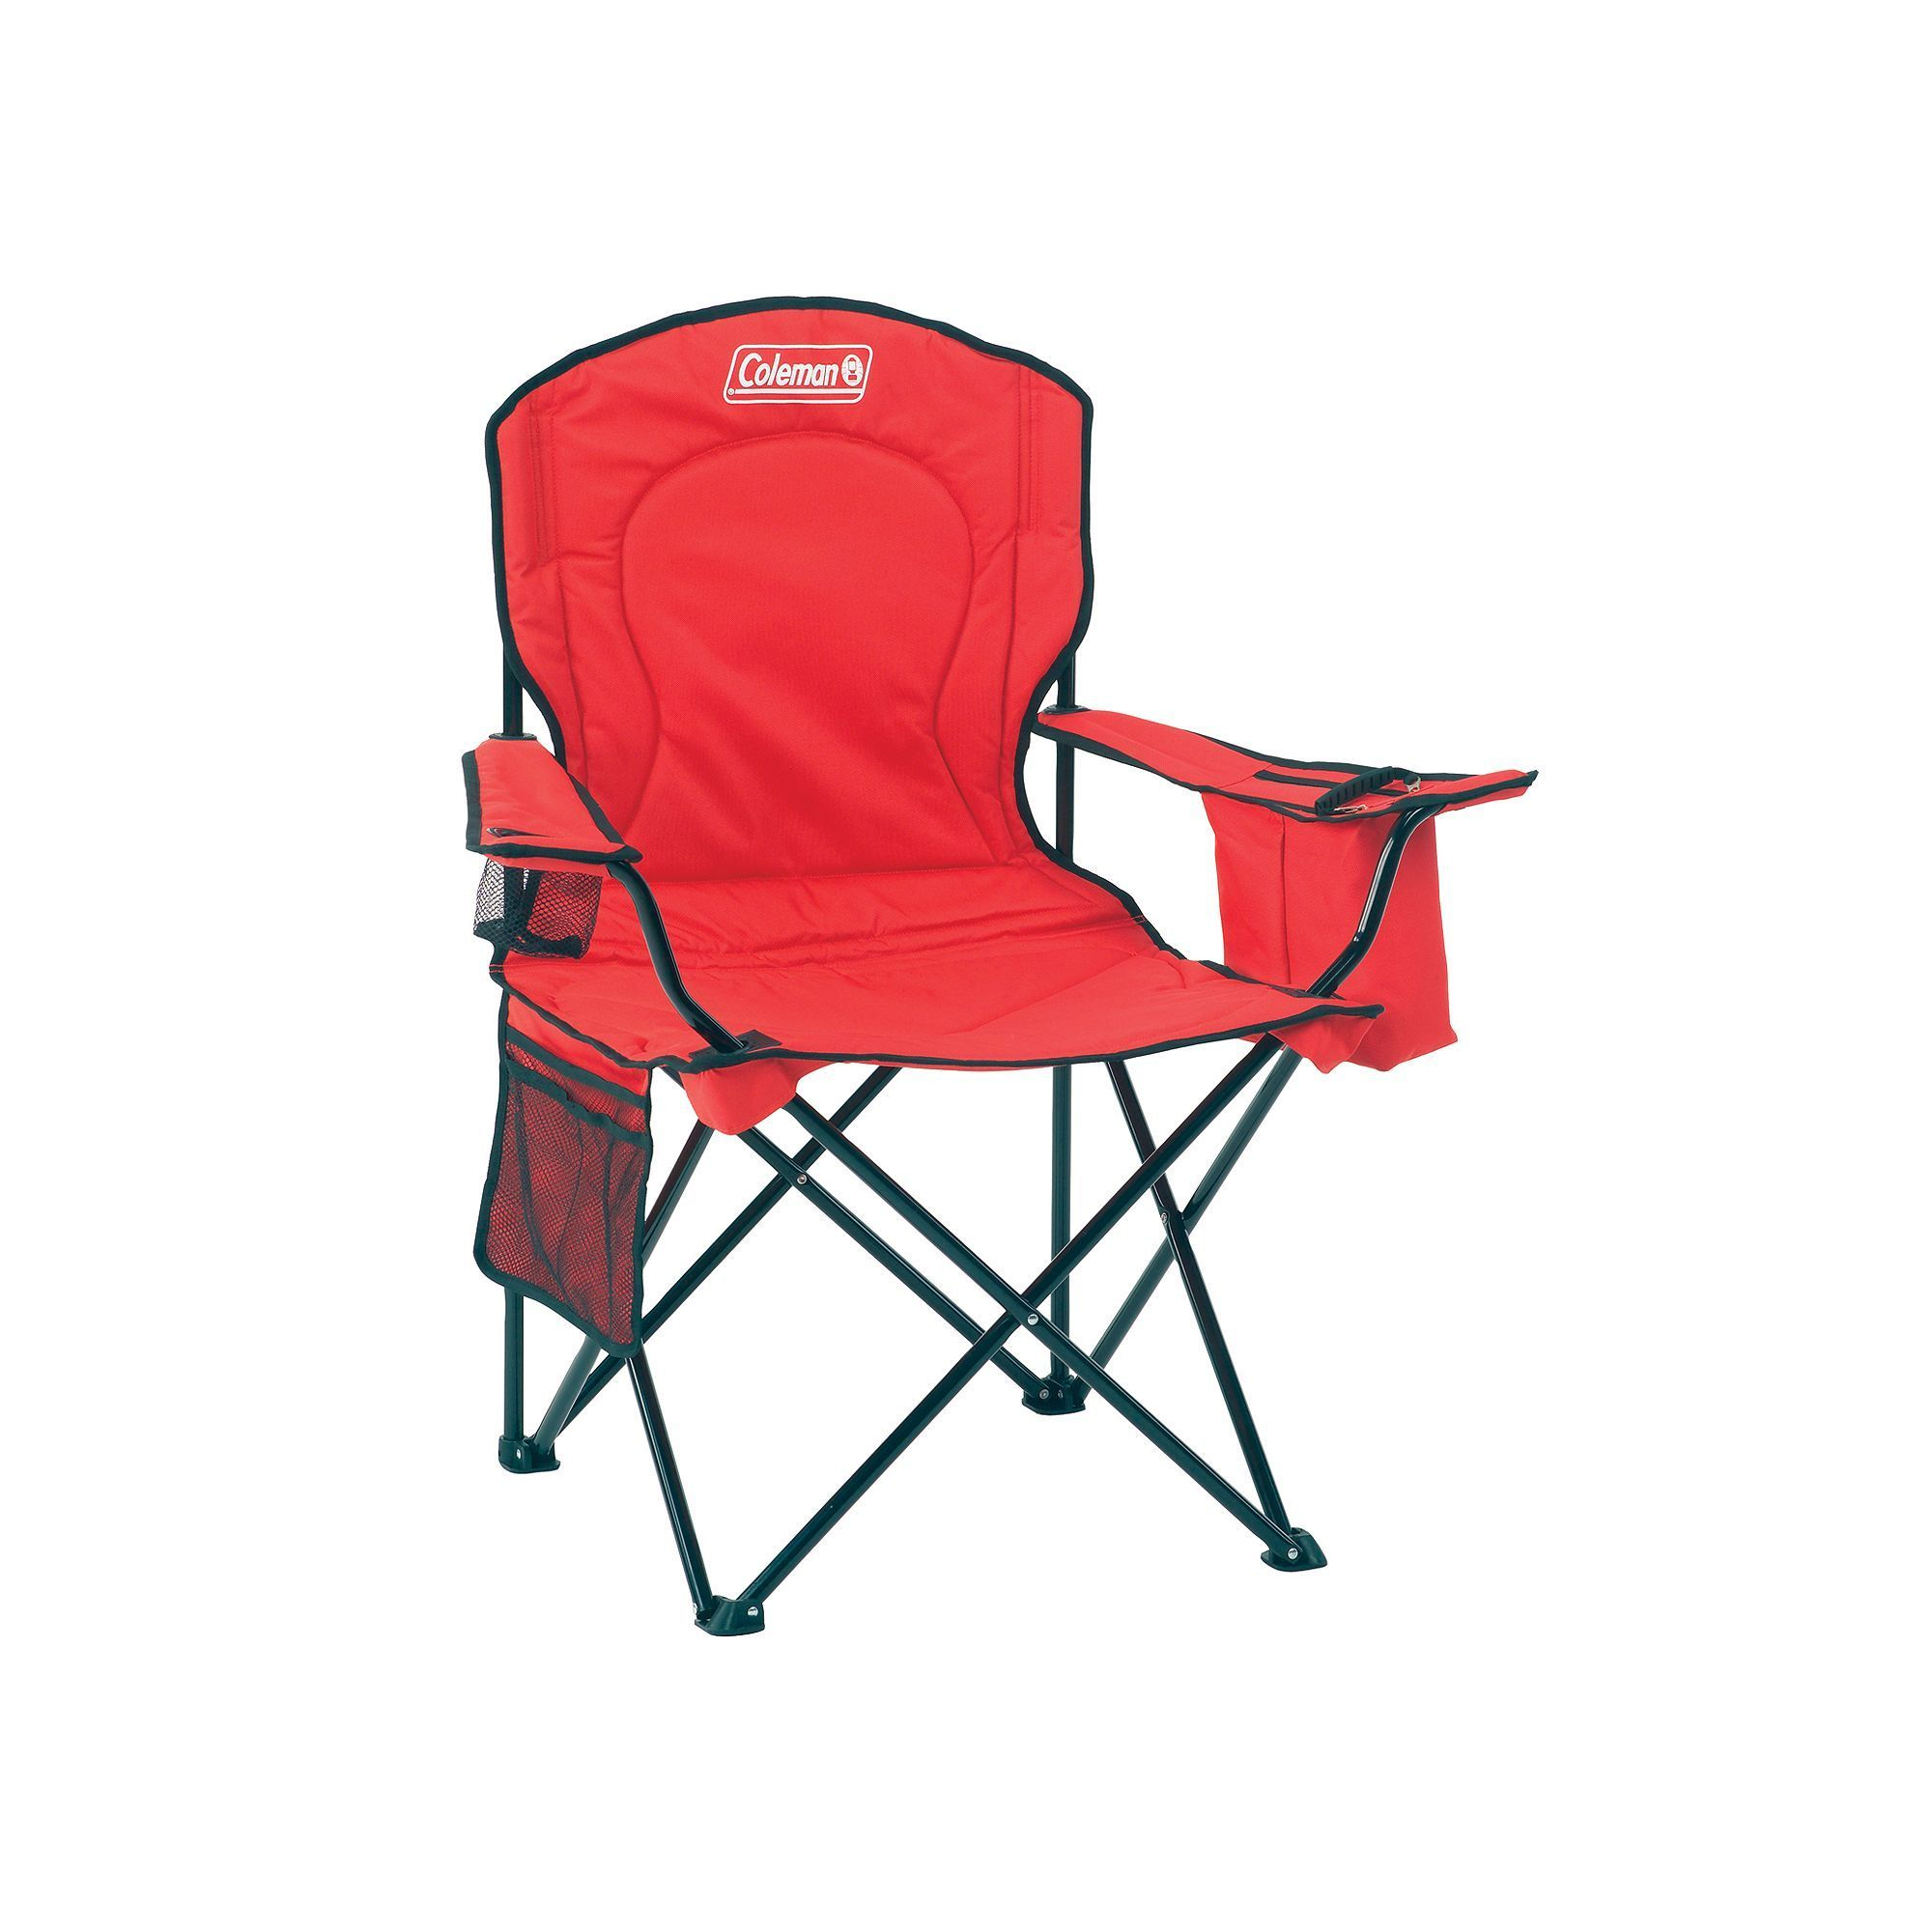 Coleman Oversize Quad Chair With Cooler Products Coleman Camping